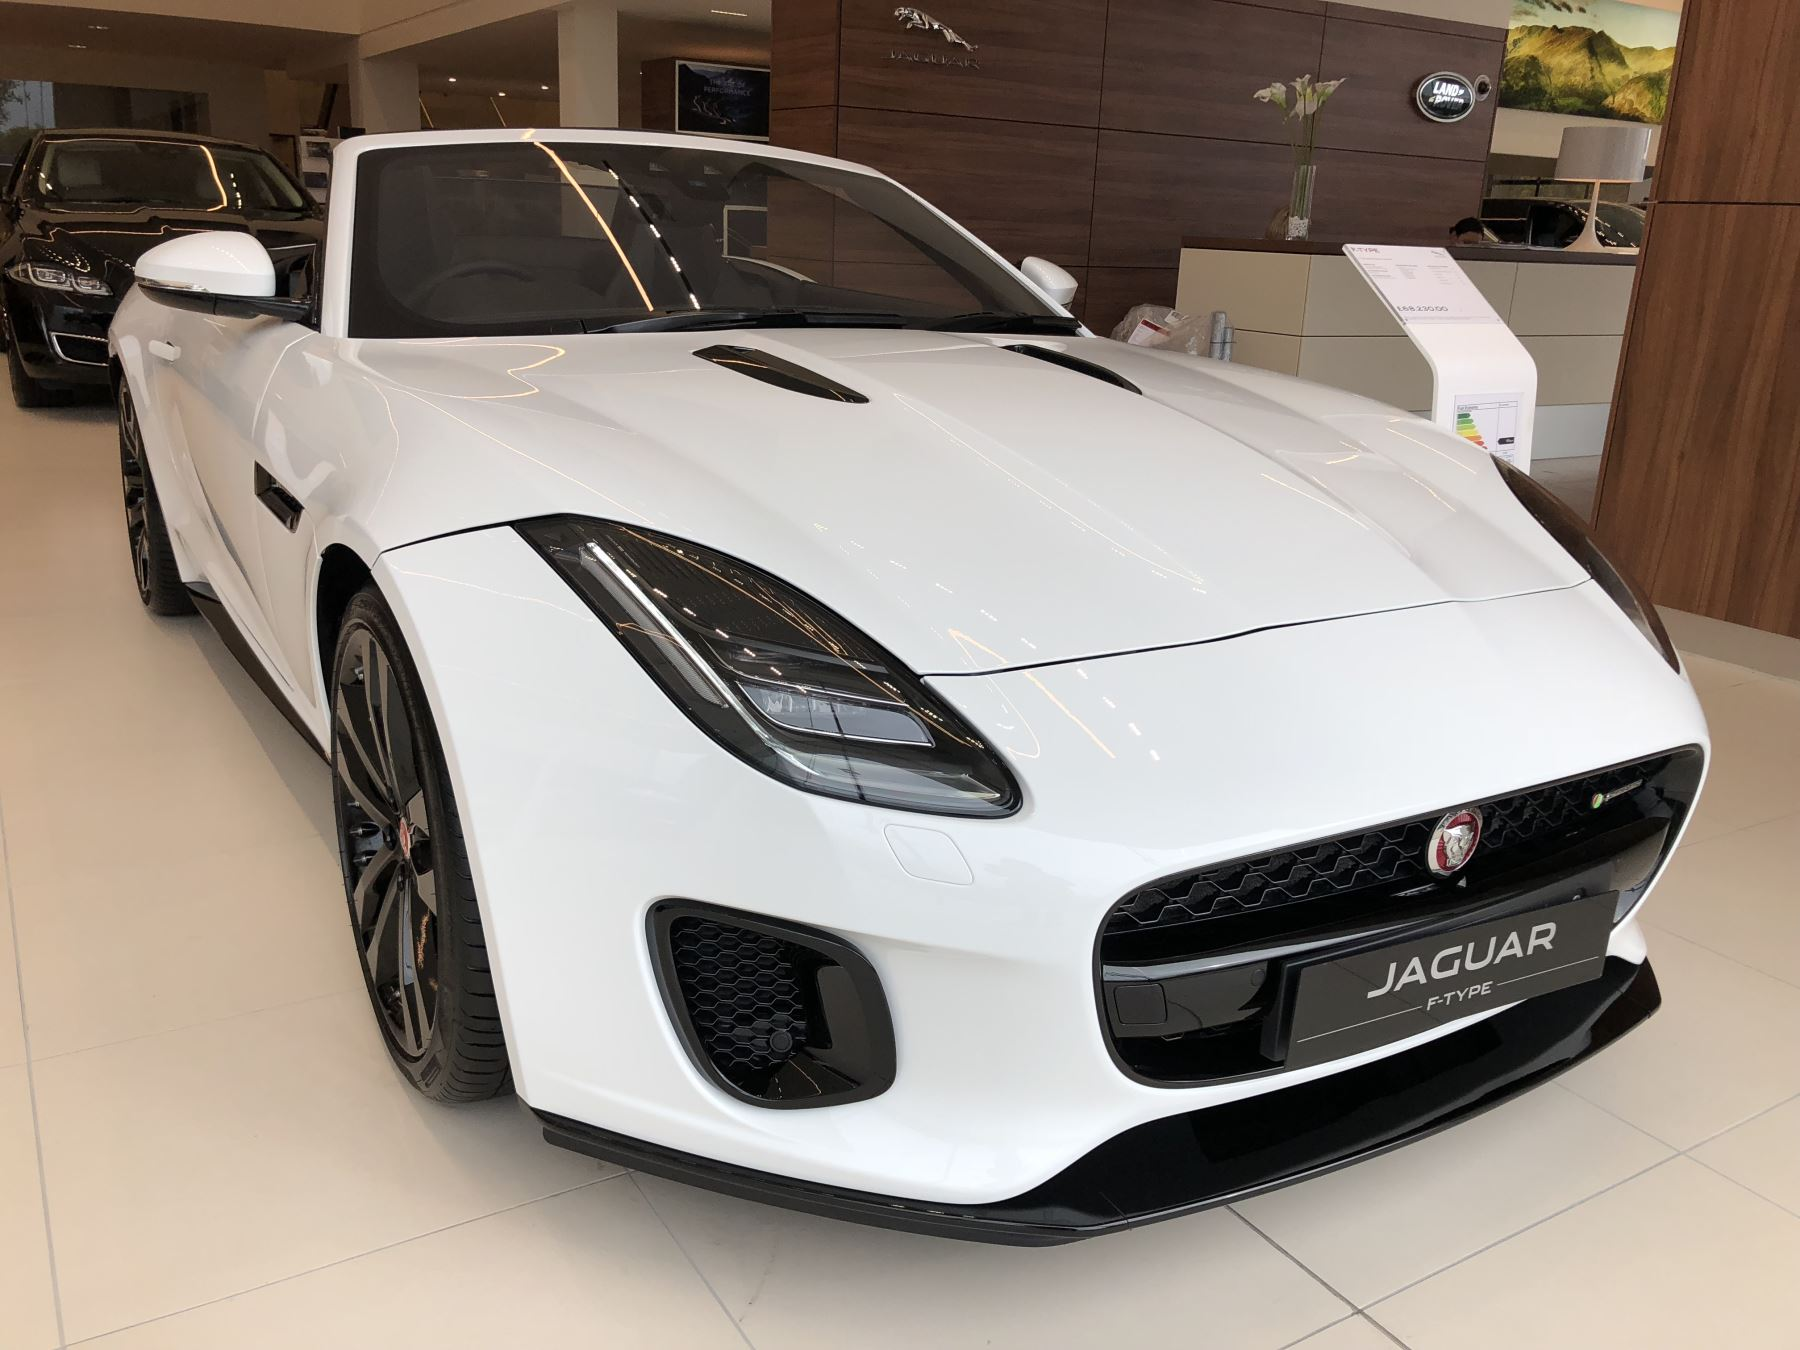 Jaguar F-TYPE 3.0 Supercharged V6 image 1